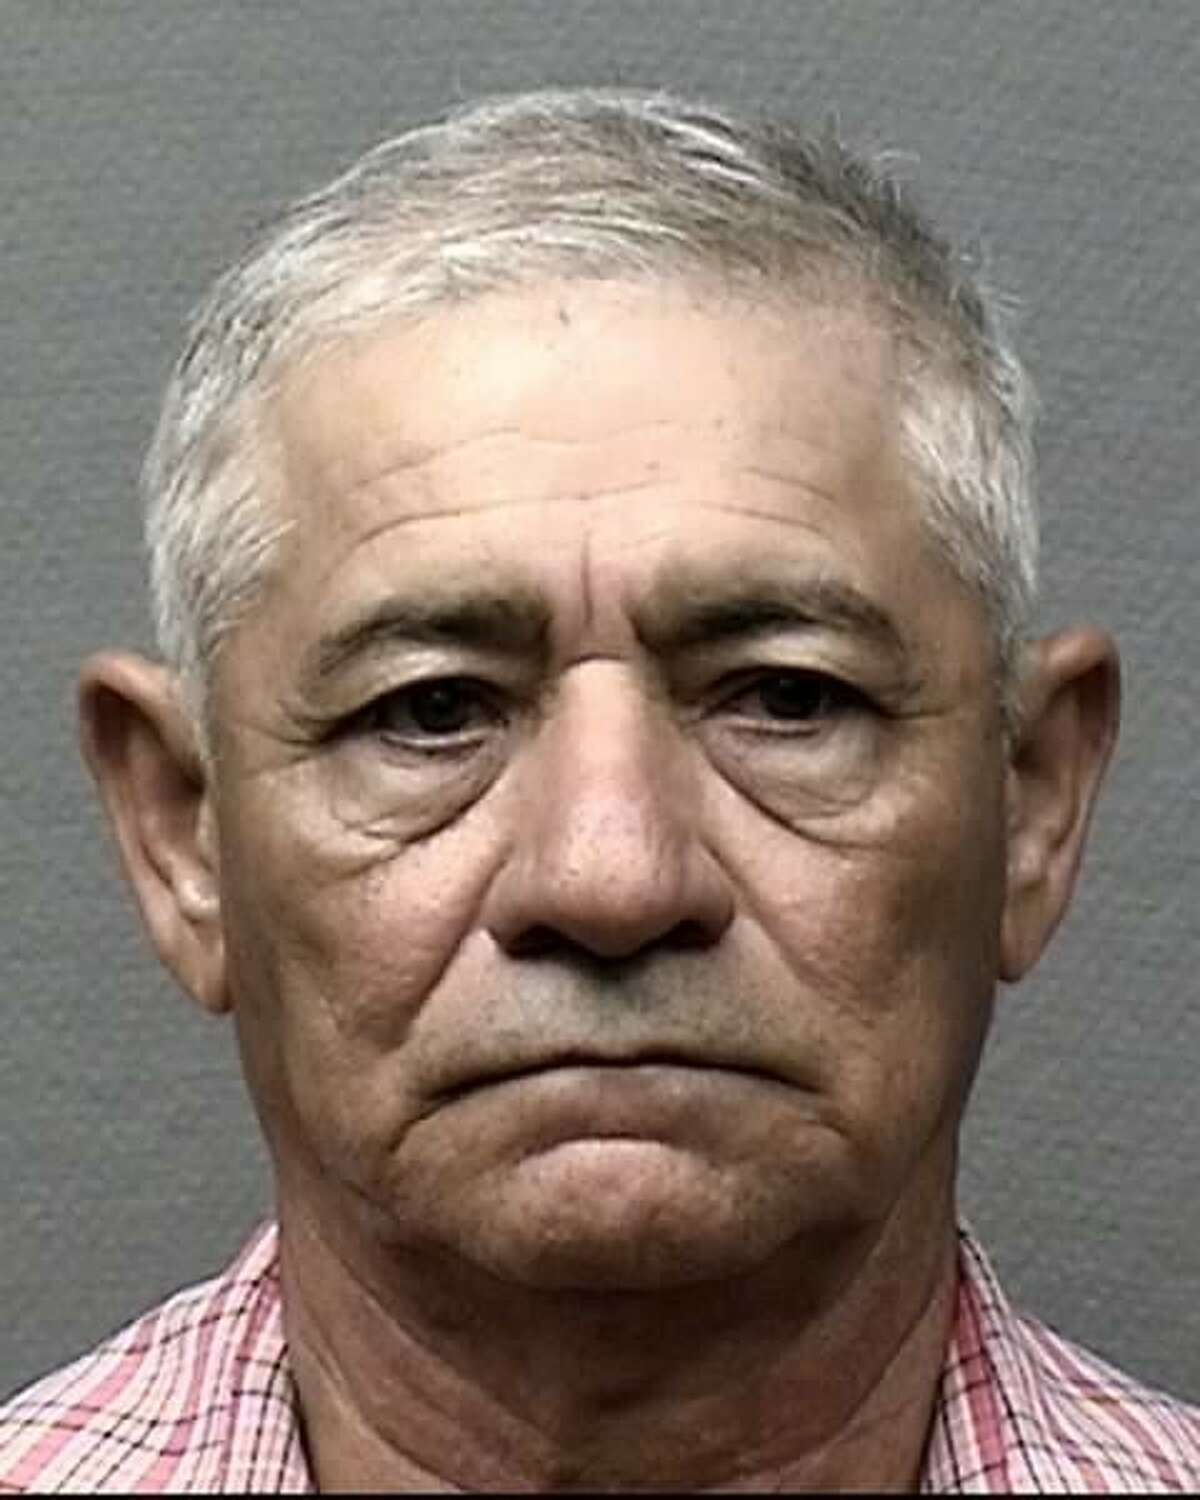 Rogelio Alberto Guardado, 69, has been charged with aggravated assault with a deadly weapon after a woman was critically injured when she was run over with a pickup about 11 p.m. Sept. 11, 2016, at 6767 Long Drive in southeast Houston. (Houston Police Department)